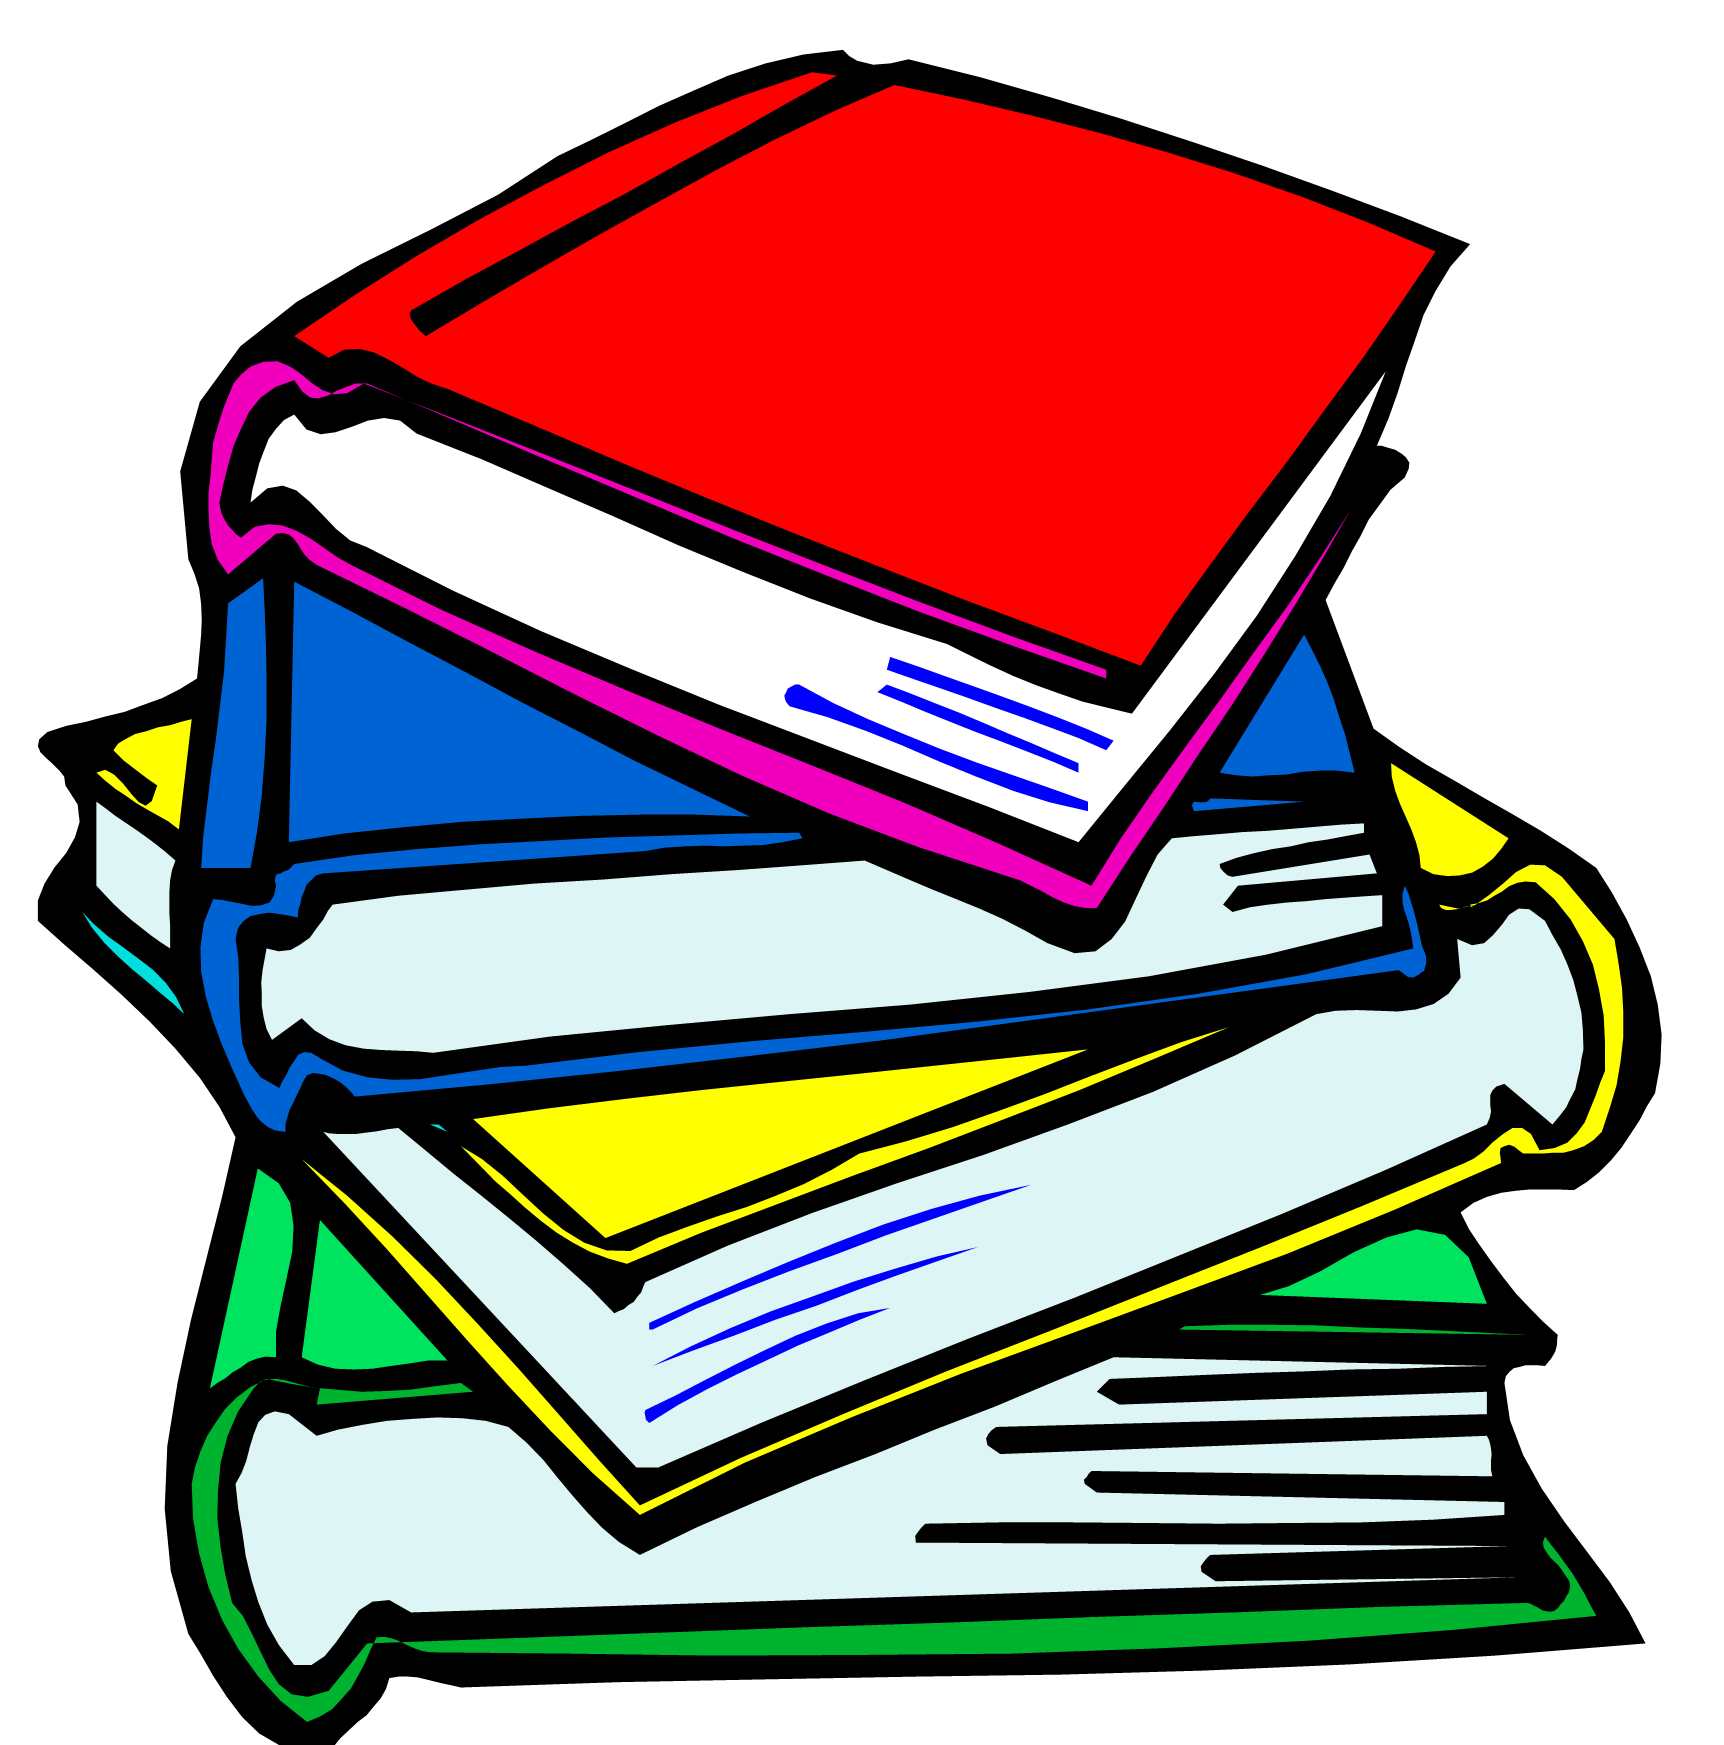 School Books Images | Clipart Panda - Free Clipart Images